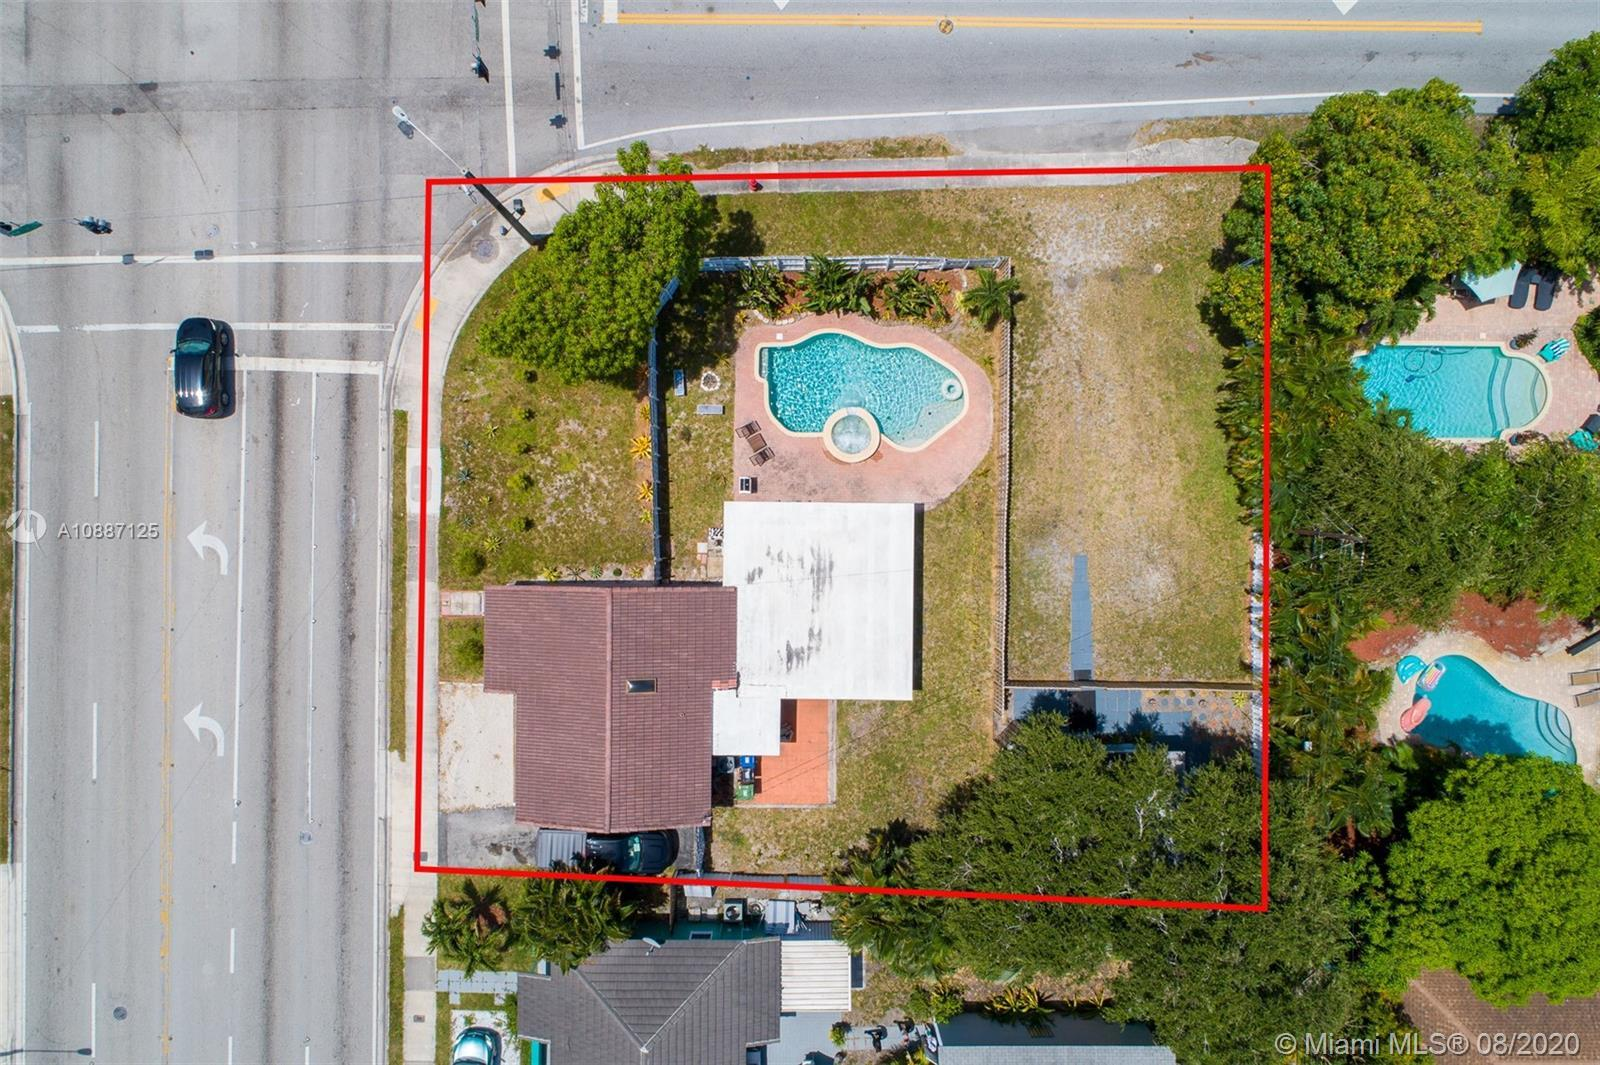 If you're looking for a renovated pool home with a beautifully renovated IN LAW quarters, you just f